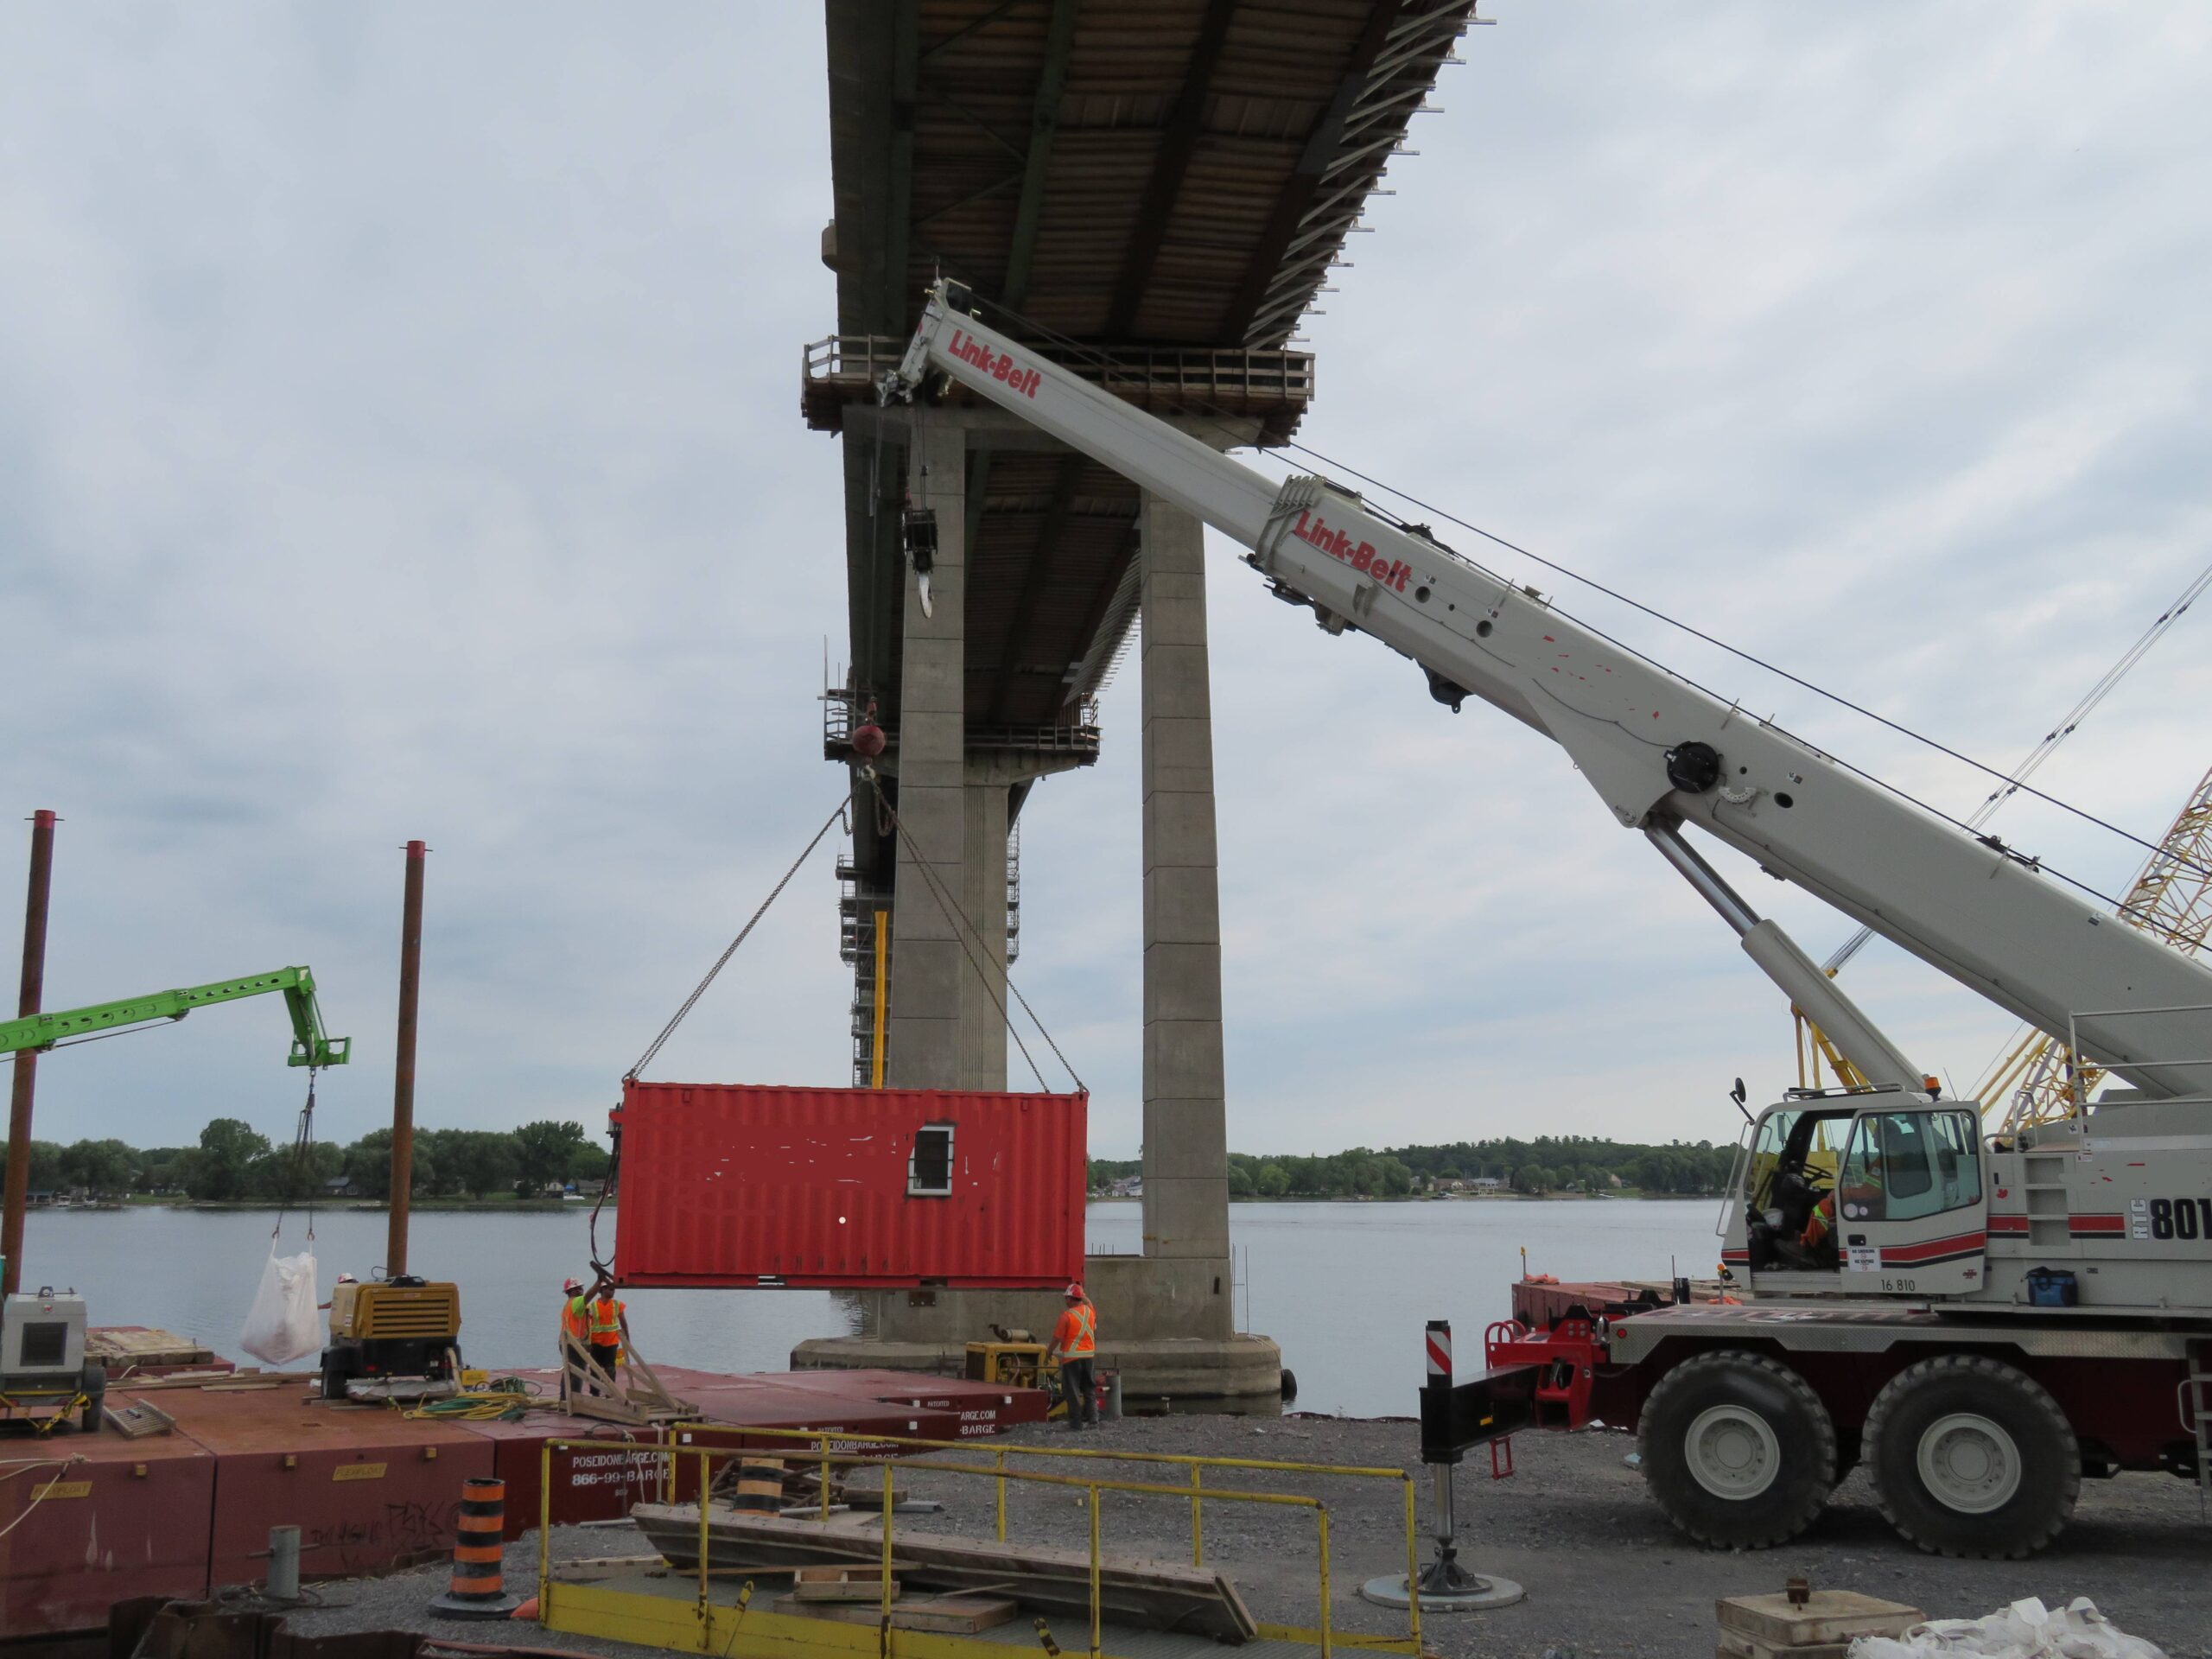 Loading the Sea-Can lunchroom on the barge with the telehandler